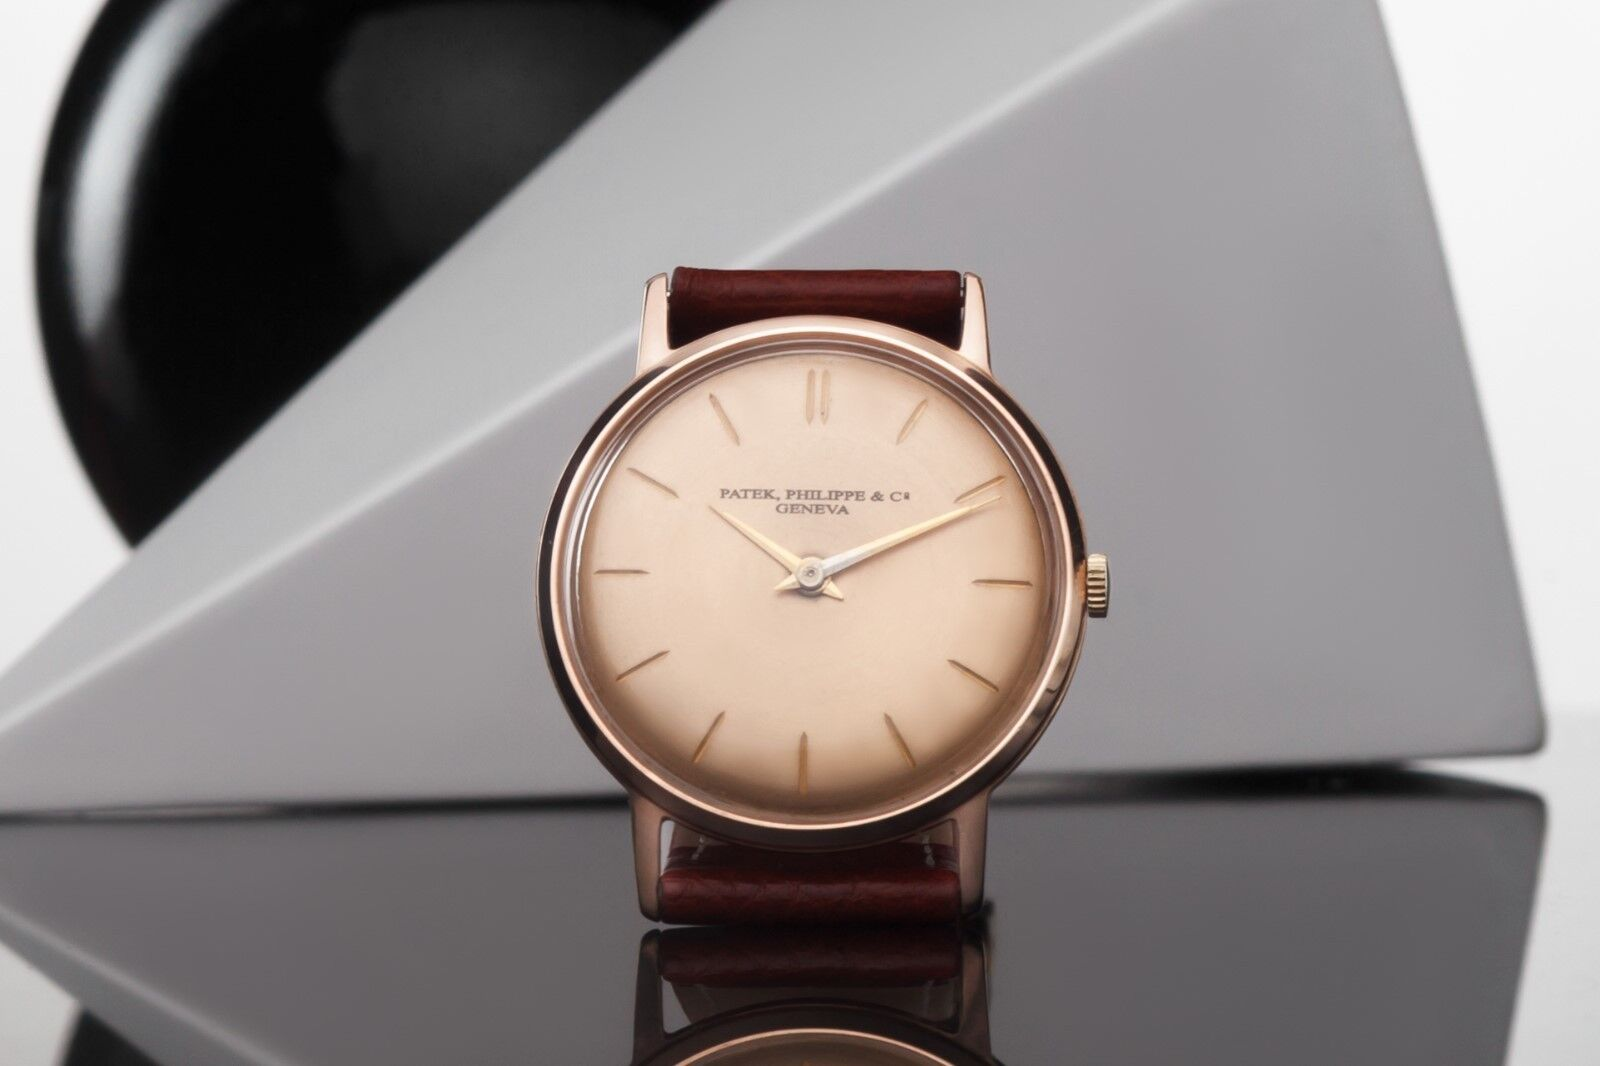 Antique Patek Philippe & Co Solid Gold Wrist Watch 14k Case - watch picture 1